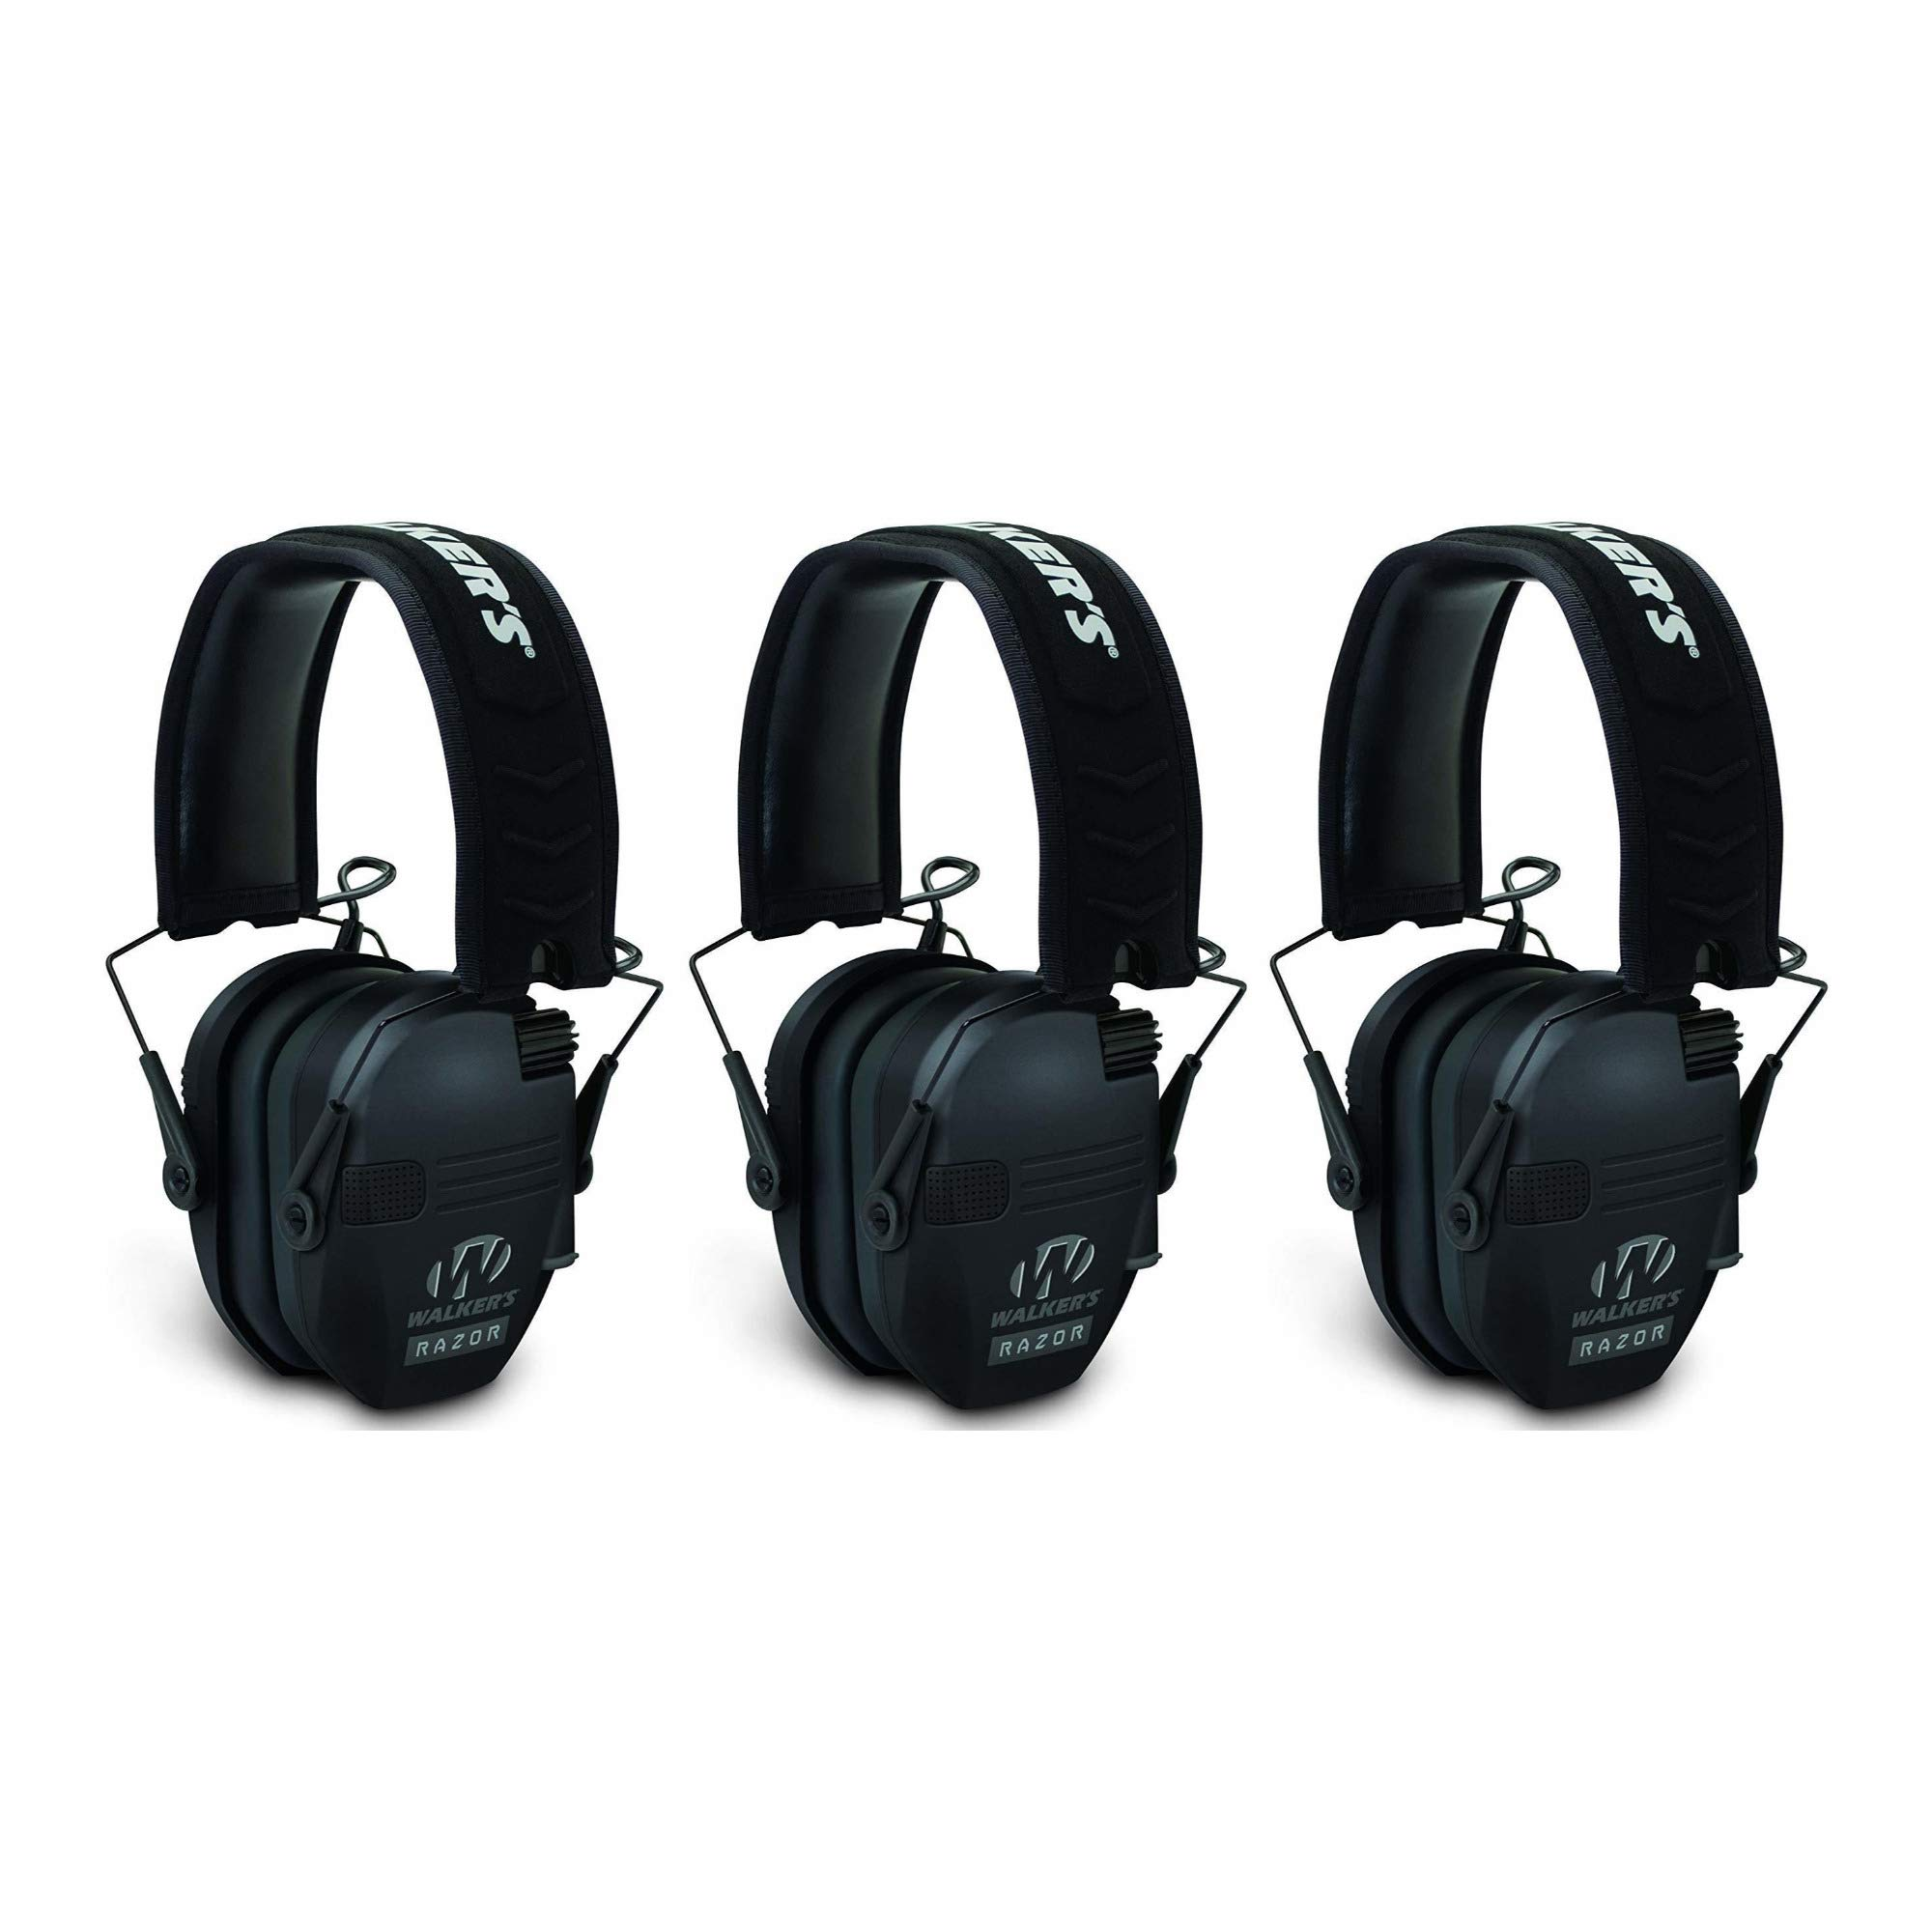 Walkers Razor Slim Electronic Shooting Muffs 3-Pack Bundle, Black by Walker's Game Ear